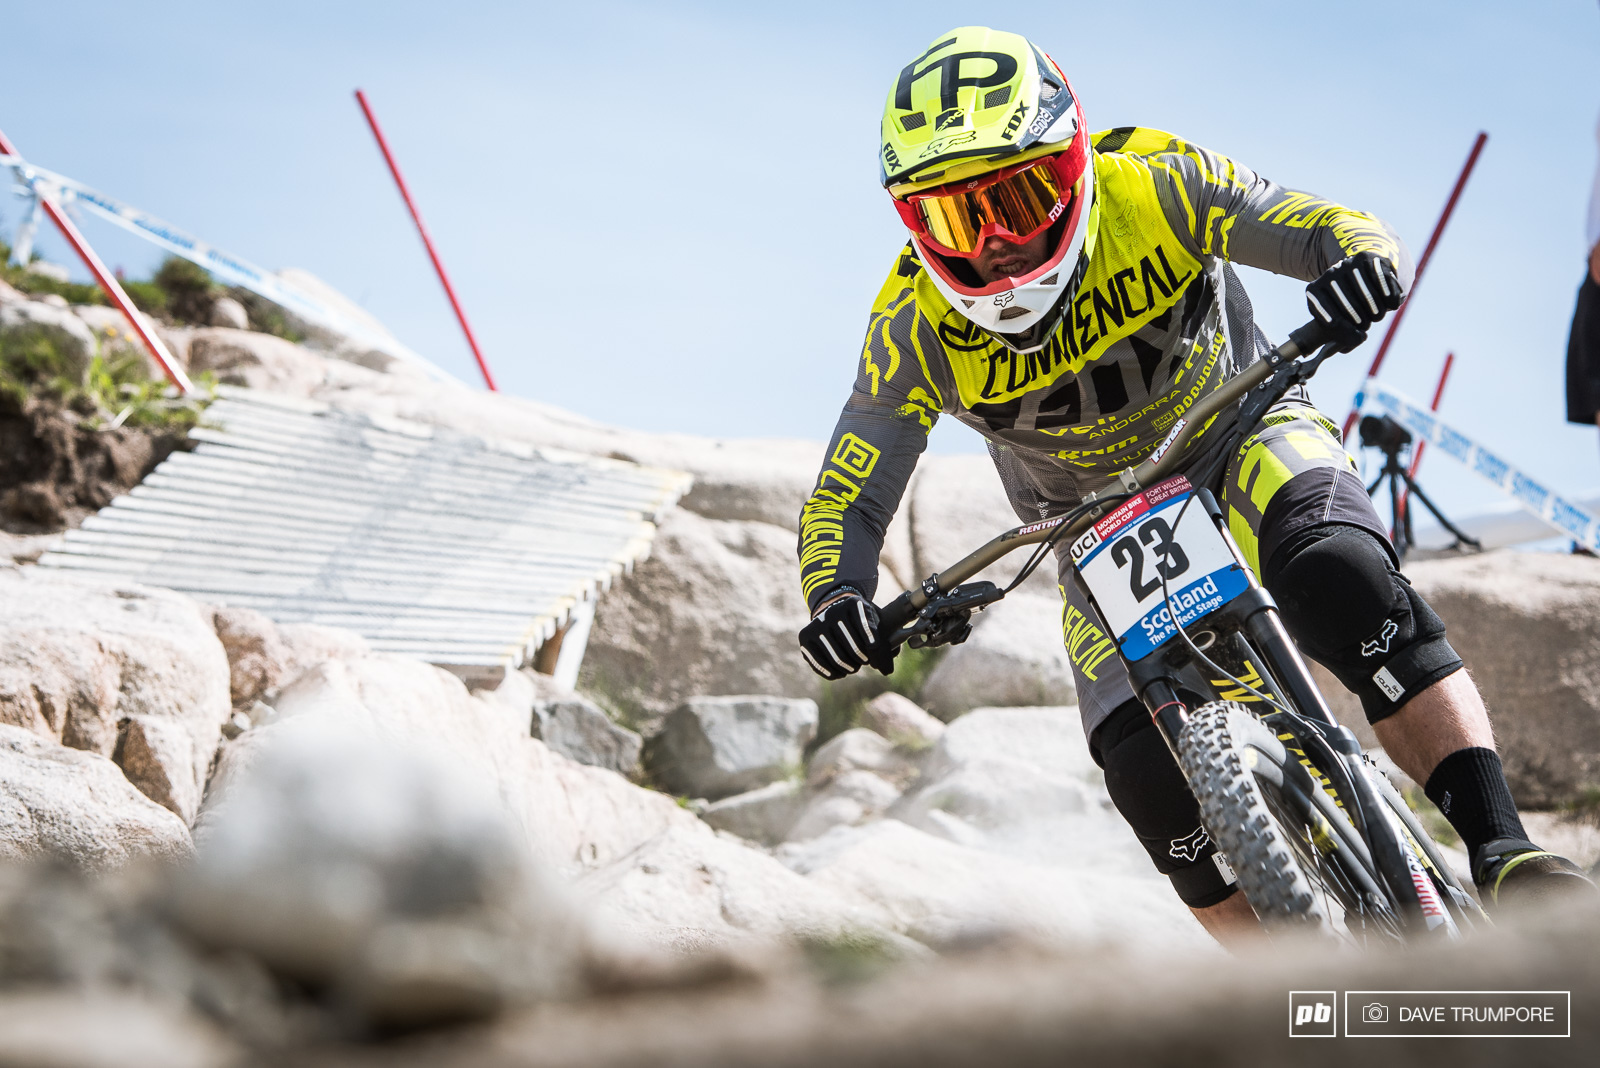 12th for Remi Thirion just a scant six seconds back. With the bone dry track in Fort William this weekend the times are tighter than ever between the top guys.